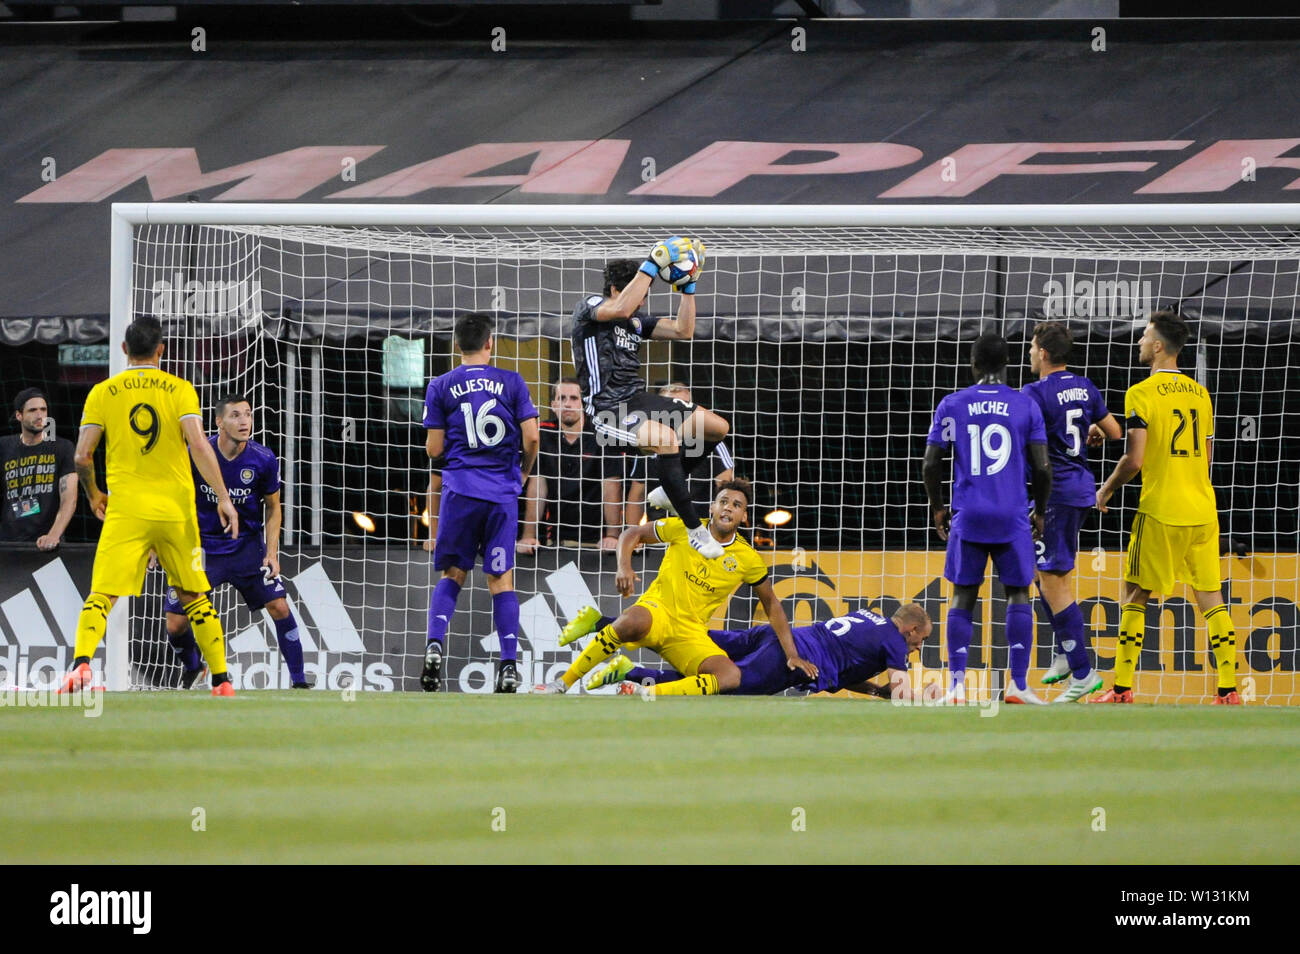 Saturday, June 29, 2019: Orlando City goalkeeper Brian Rowe (23) the first half of the match between Orlando City and Columbus Crew SC at MAPFRE Stadium, in Columbus OH. Mandatory Photo Credit: Dorn Byg/Cal Sport Media. Orlando City 2 - Columbus Crew SC 0 at the end of the match - Stock Image